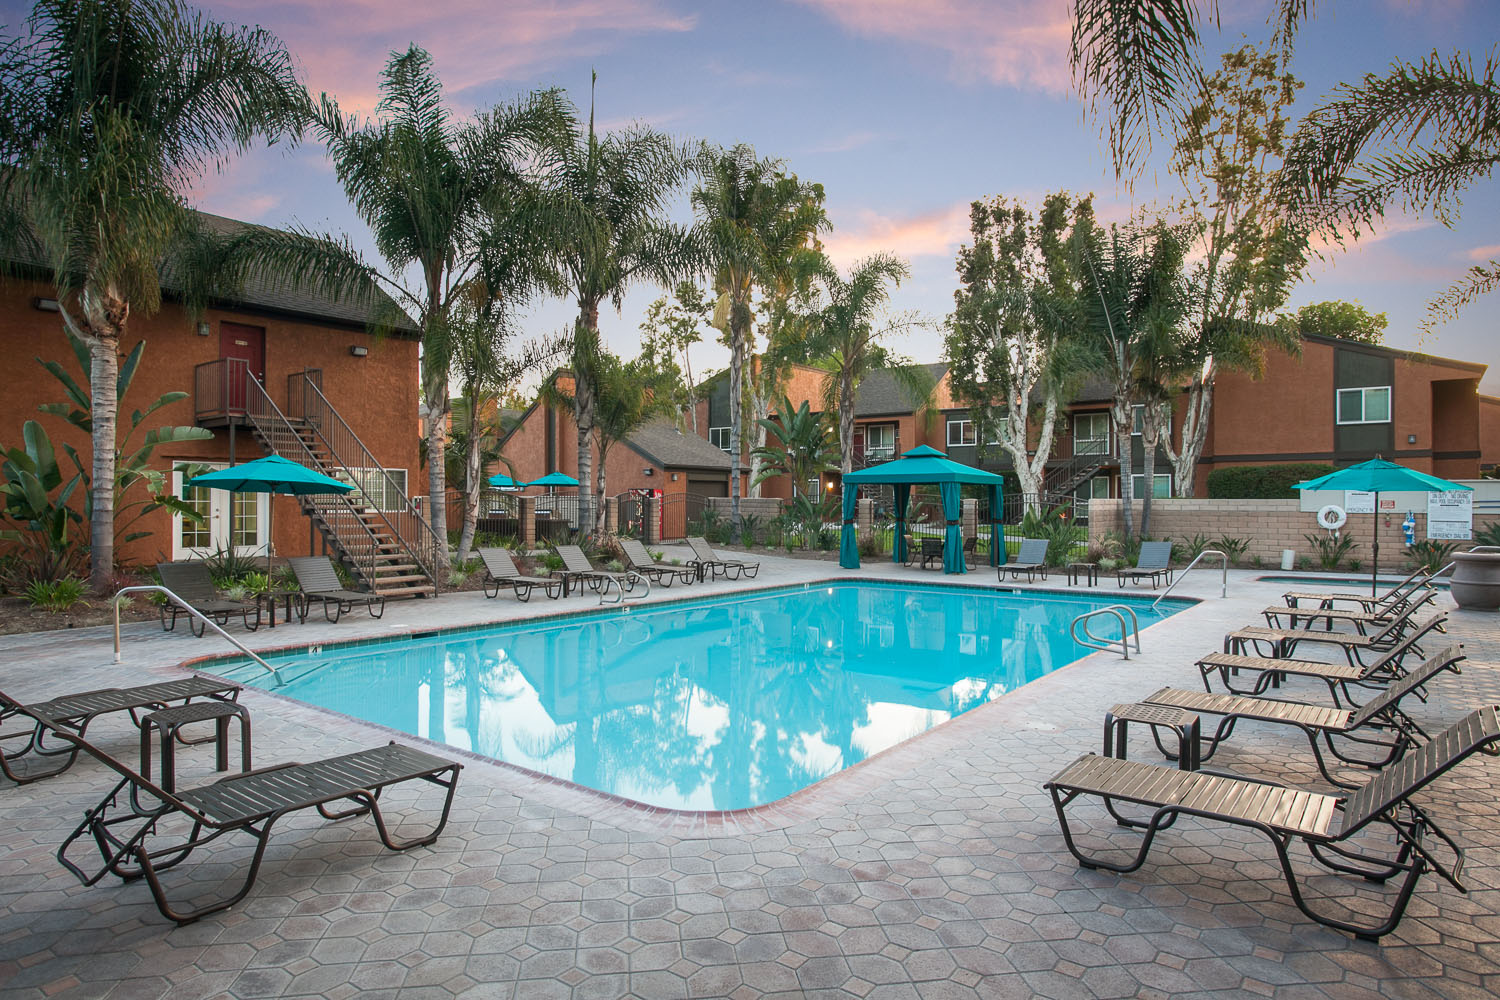 Highland Pinetree Apartments in Fullerton, CA - uCribs